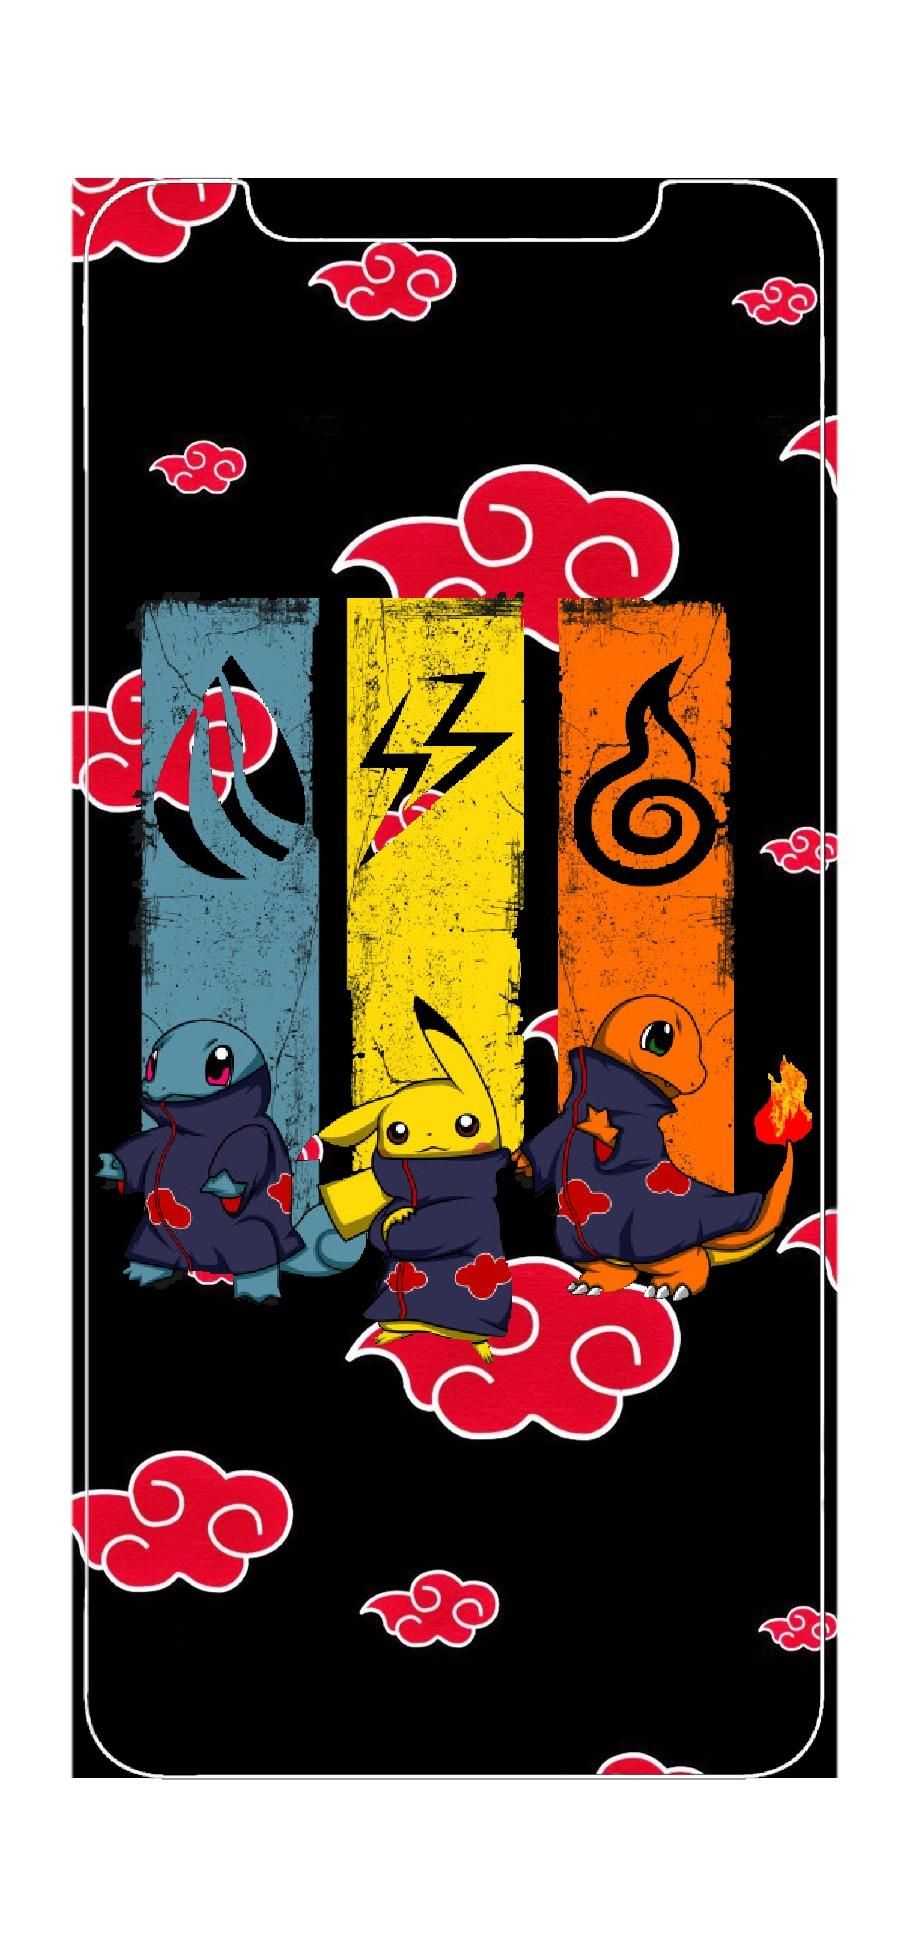 Found This Akatsuki Pokemon Picture Then Threw On The Back Round